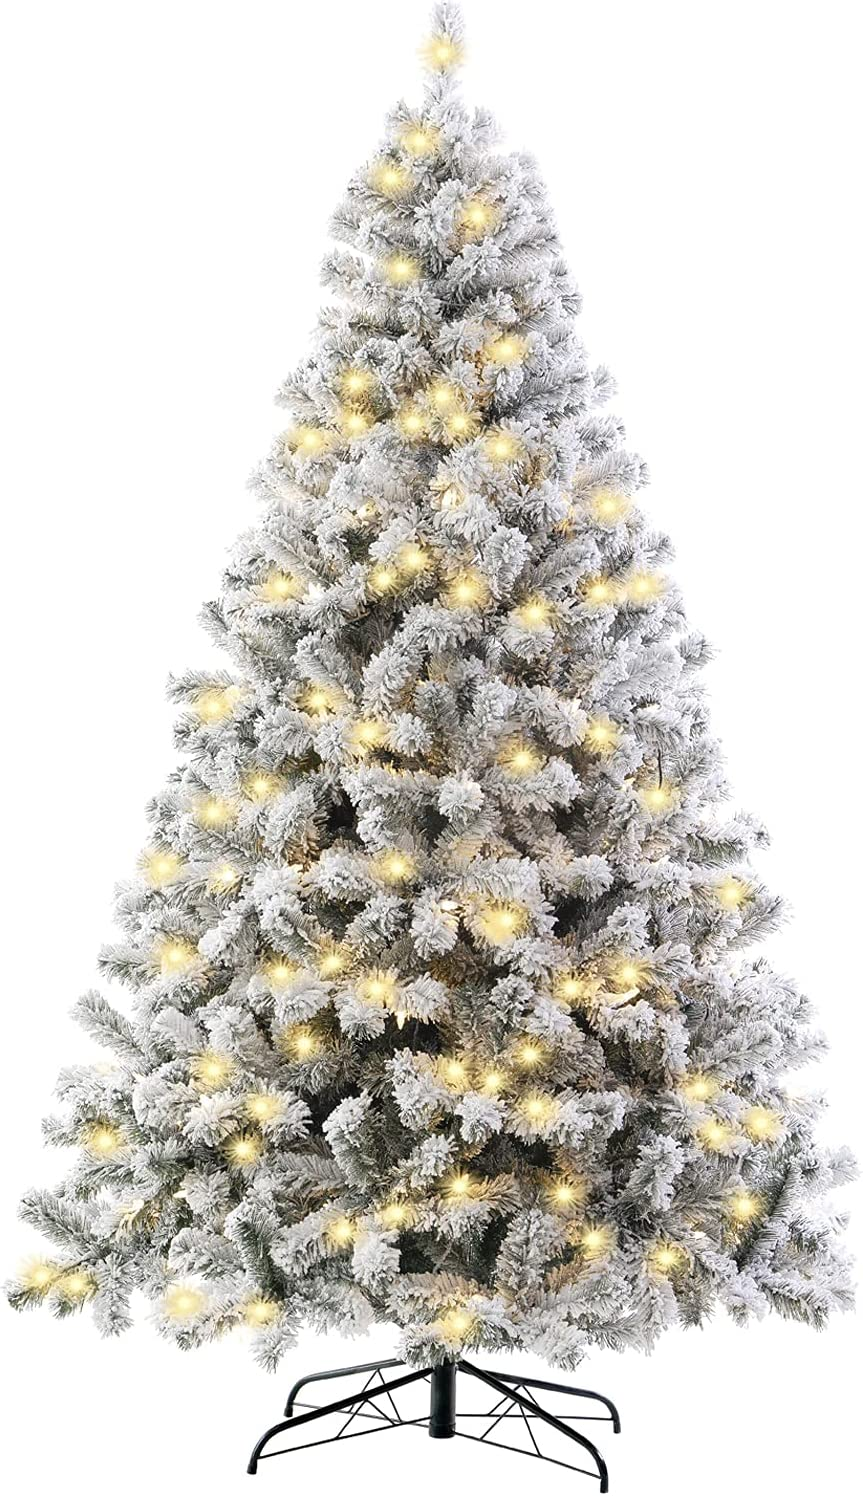 SINTEAN 7.5FT Snow Flocked Prelit Christmas Tree, Premium Hinged Artificial Xmas Tree with LED Warm White Lights, Reinforced Metal Base & Easy Assembly